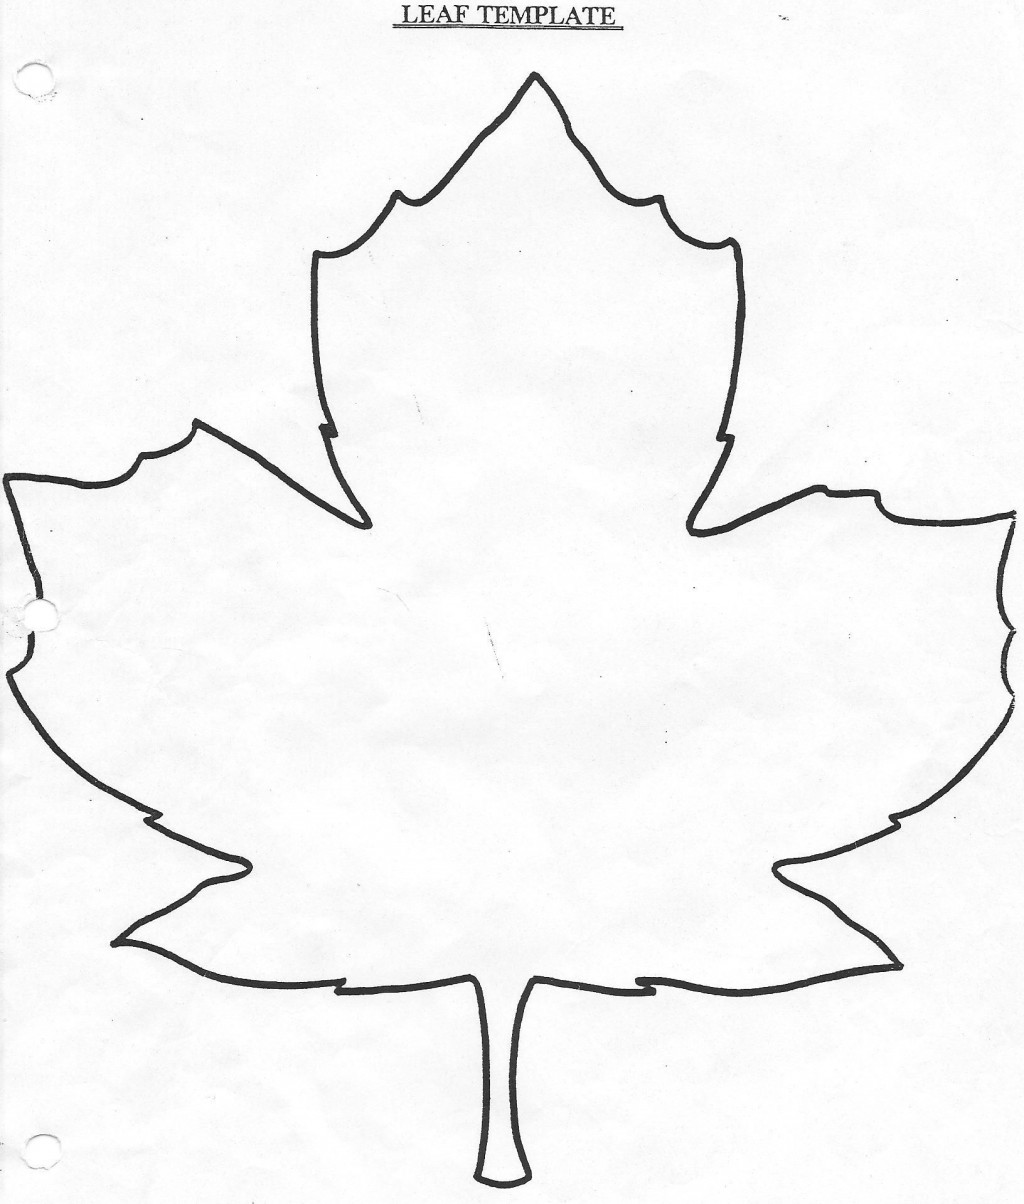 008 Archaicawful Blank Leaf Template With Line Photo  Lines PrintableLarge